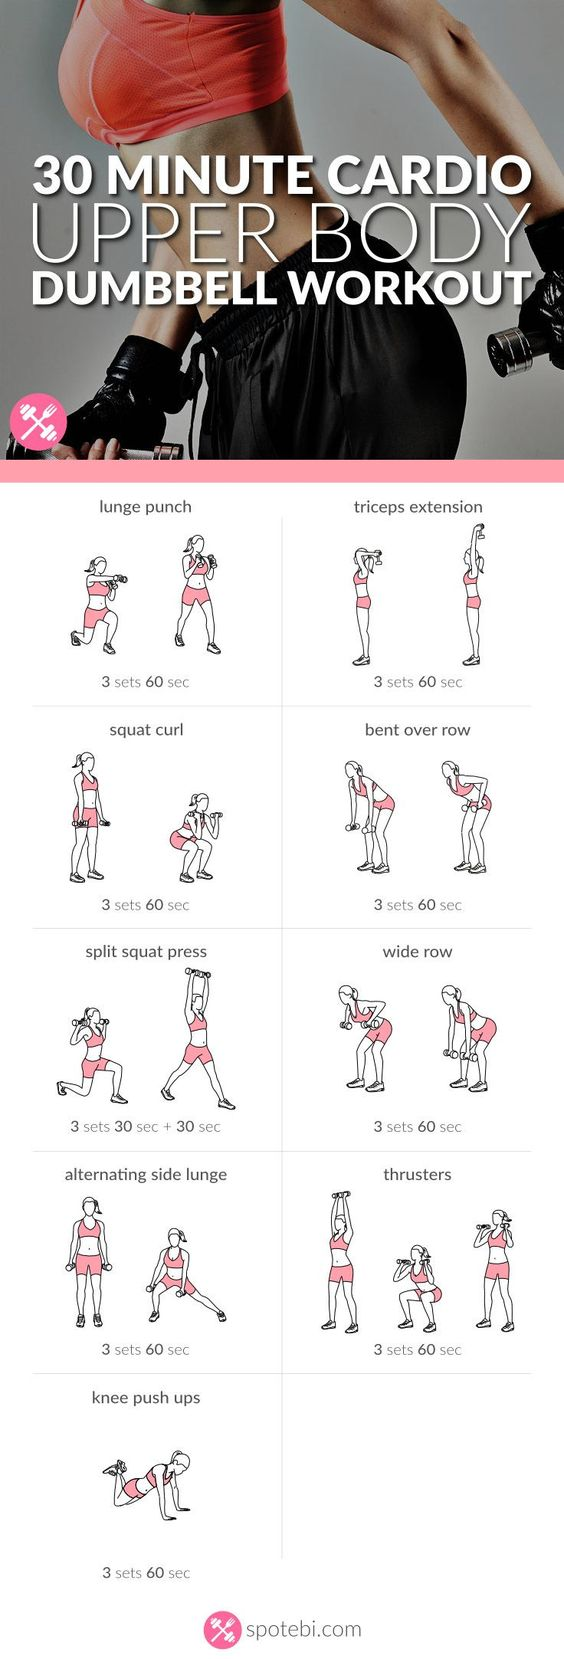 Quickly transform your upper body with this 30 minute cardio routine for women. A dumbbell workout to tone and tighten your arms, chest, back and shoulders.  ?utm_content=bufferab5a5&utm_medium=social&utm_source=pinterest.com&utm_campaign=buf…